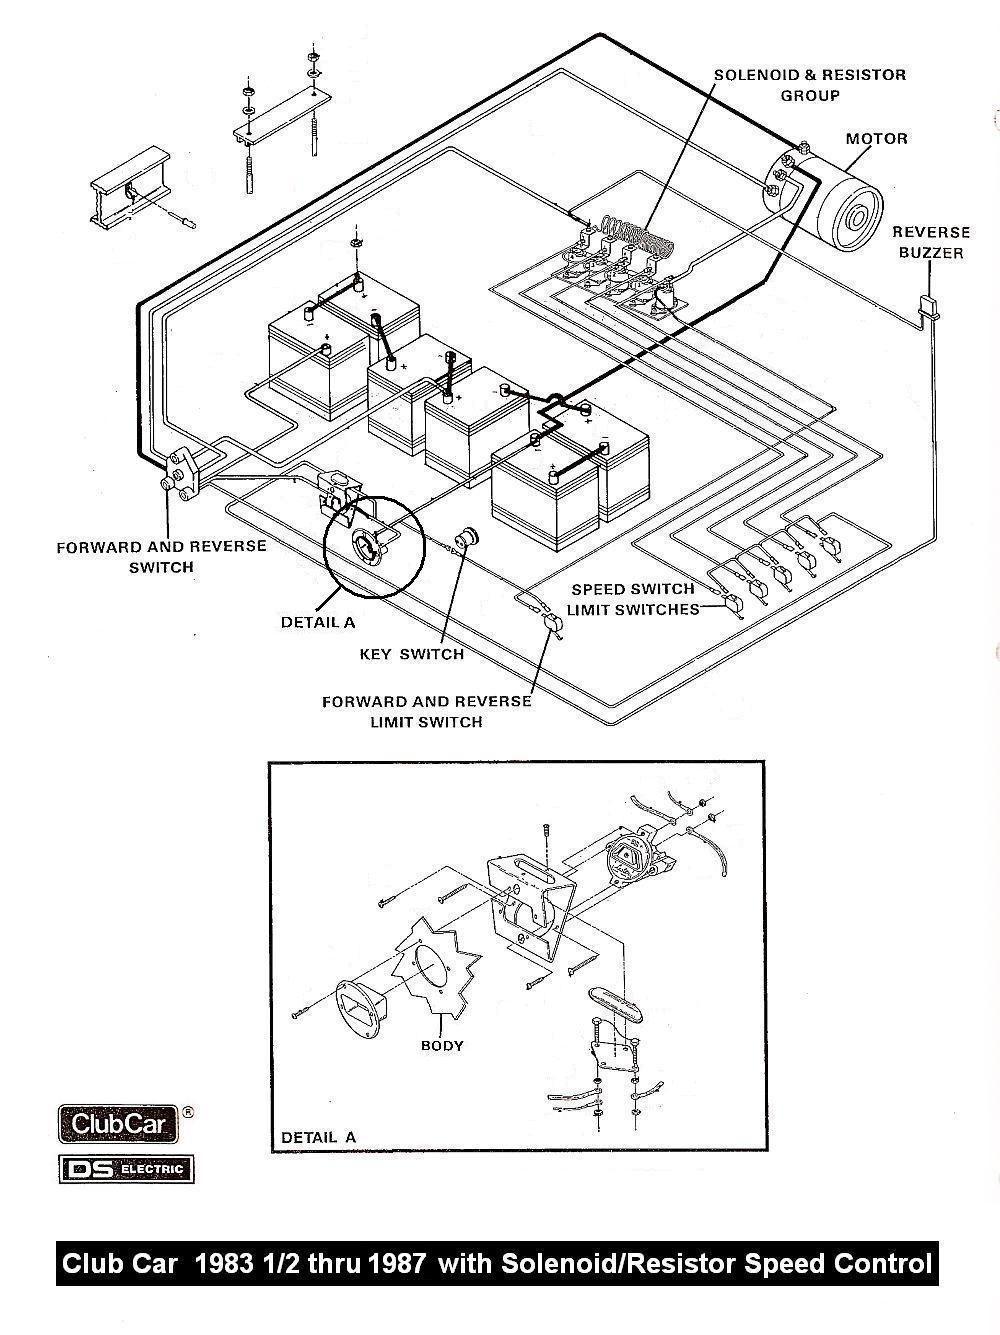 0e8d045370be7682b159825224221faa simple car wiring diagram simple free wiring diagrams Basic 12 Volt Wiring Diagrams at downloadfilm.co